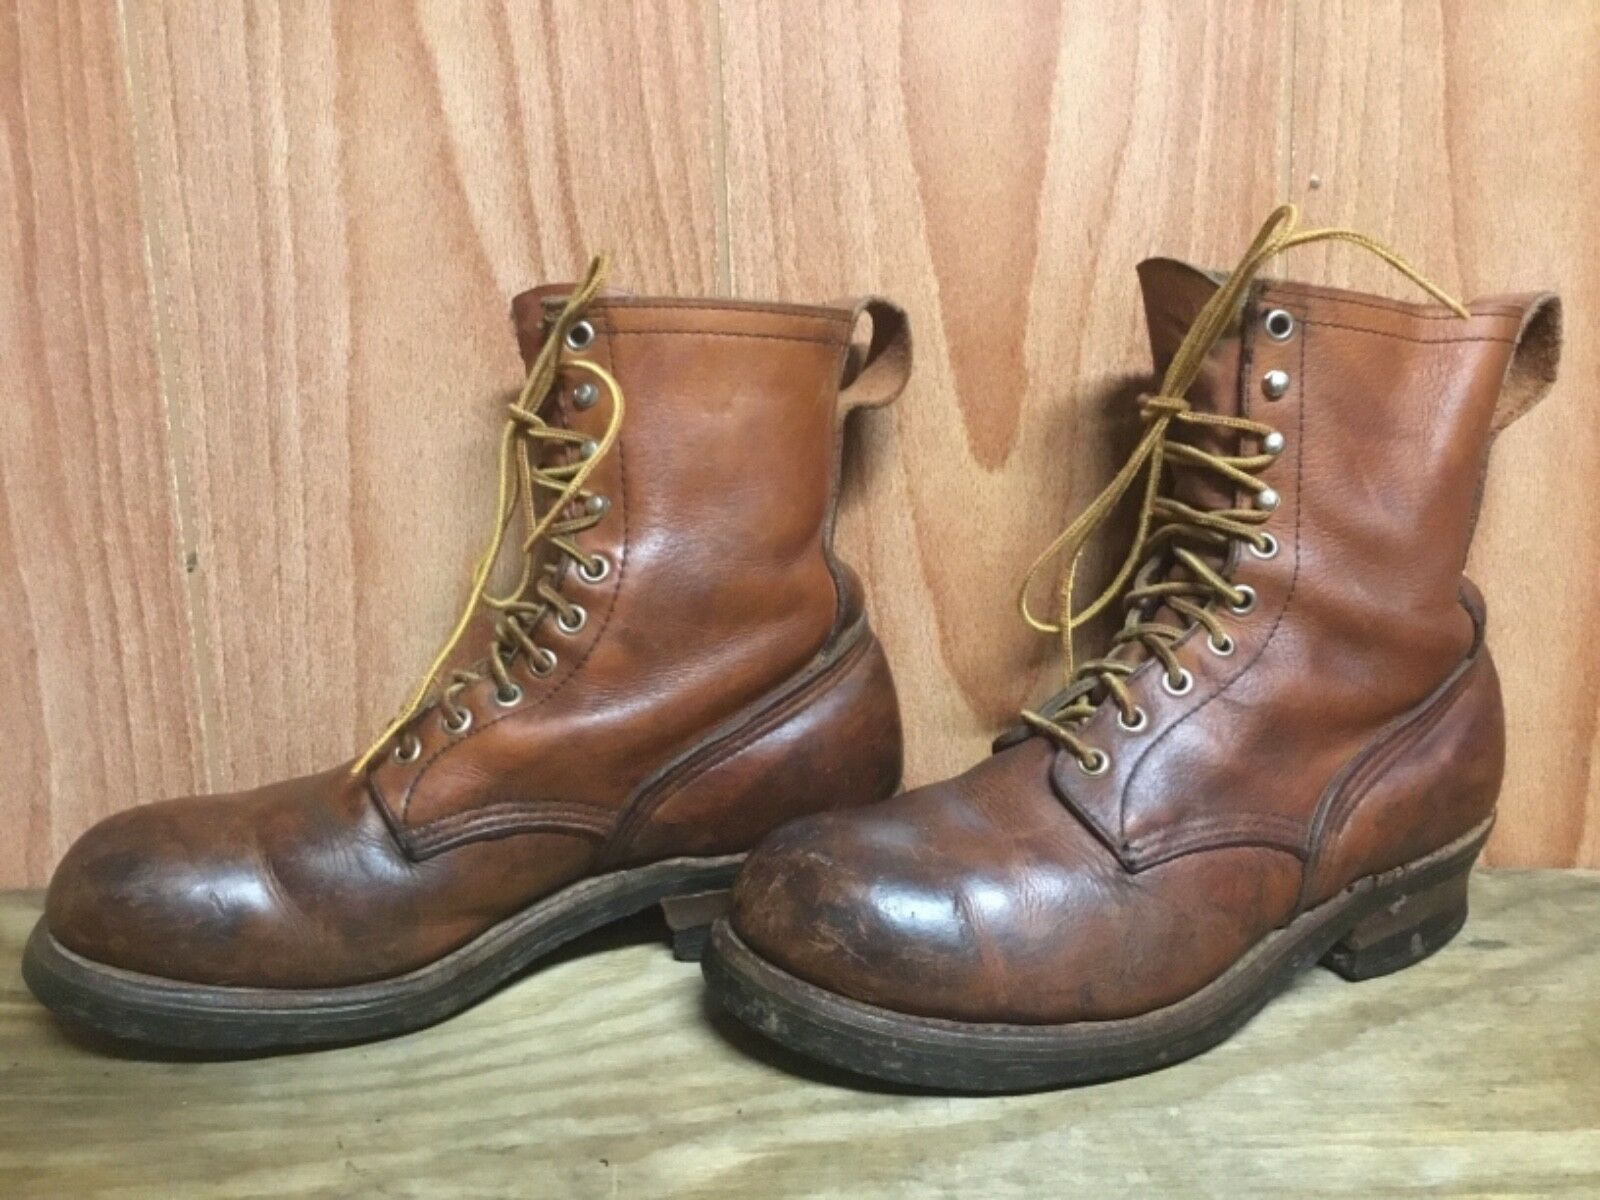 VTG MENS RED WING STEEL TOE WORK BROWN BOOTS SIZE 8.5